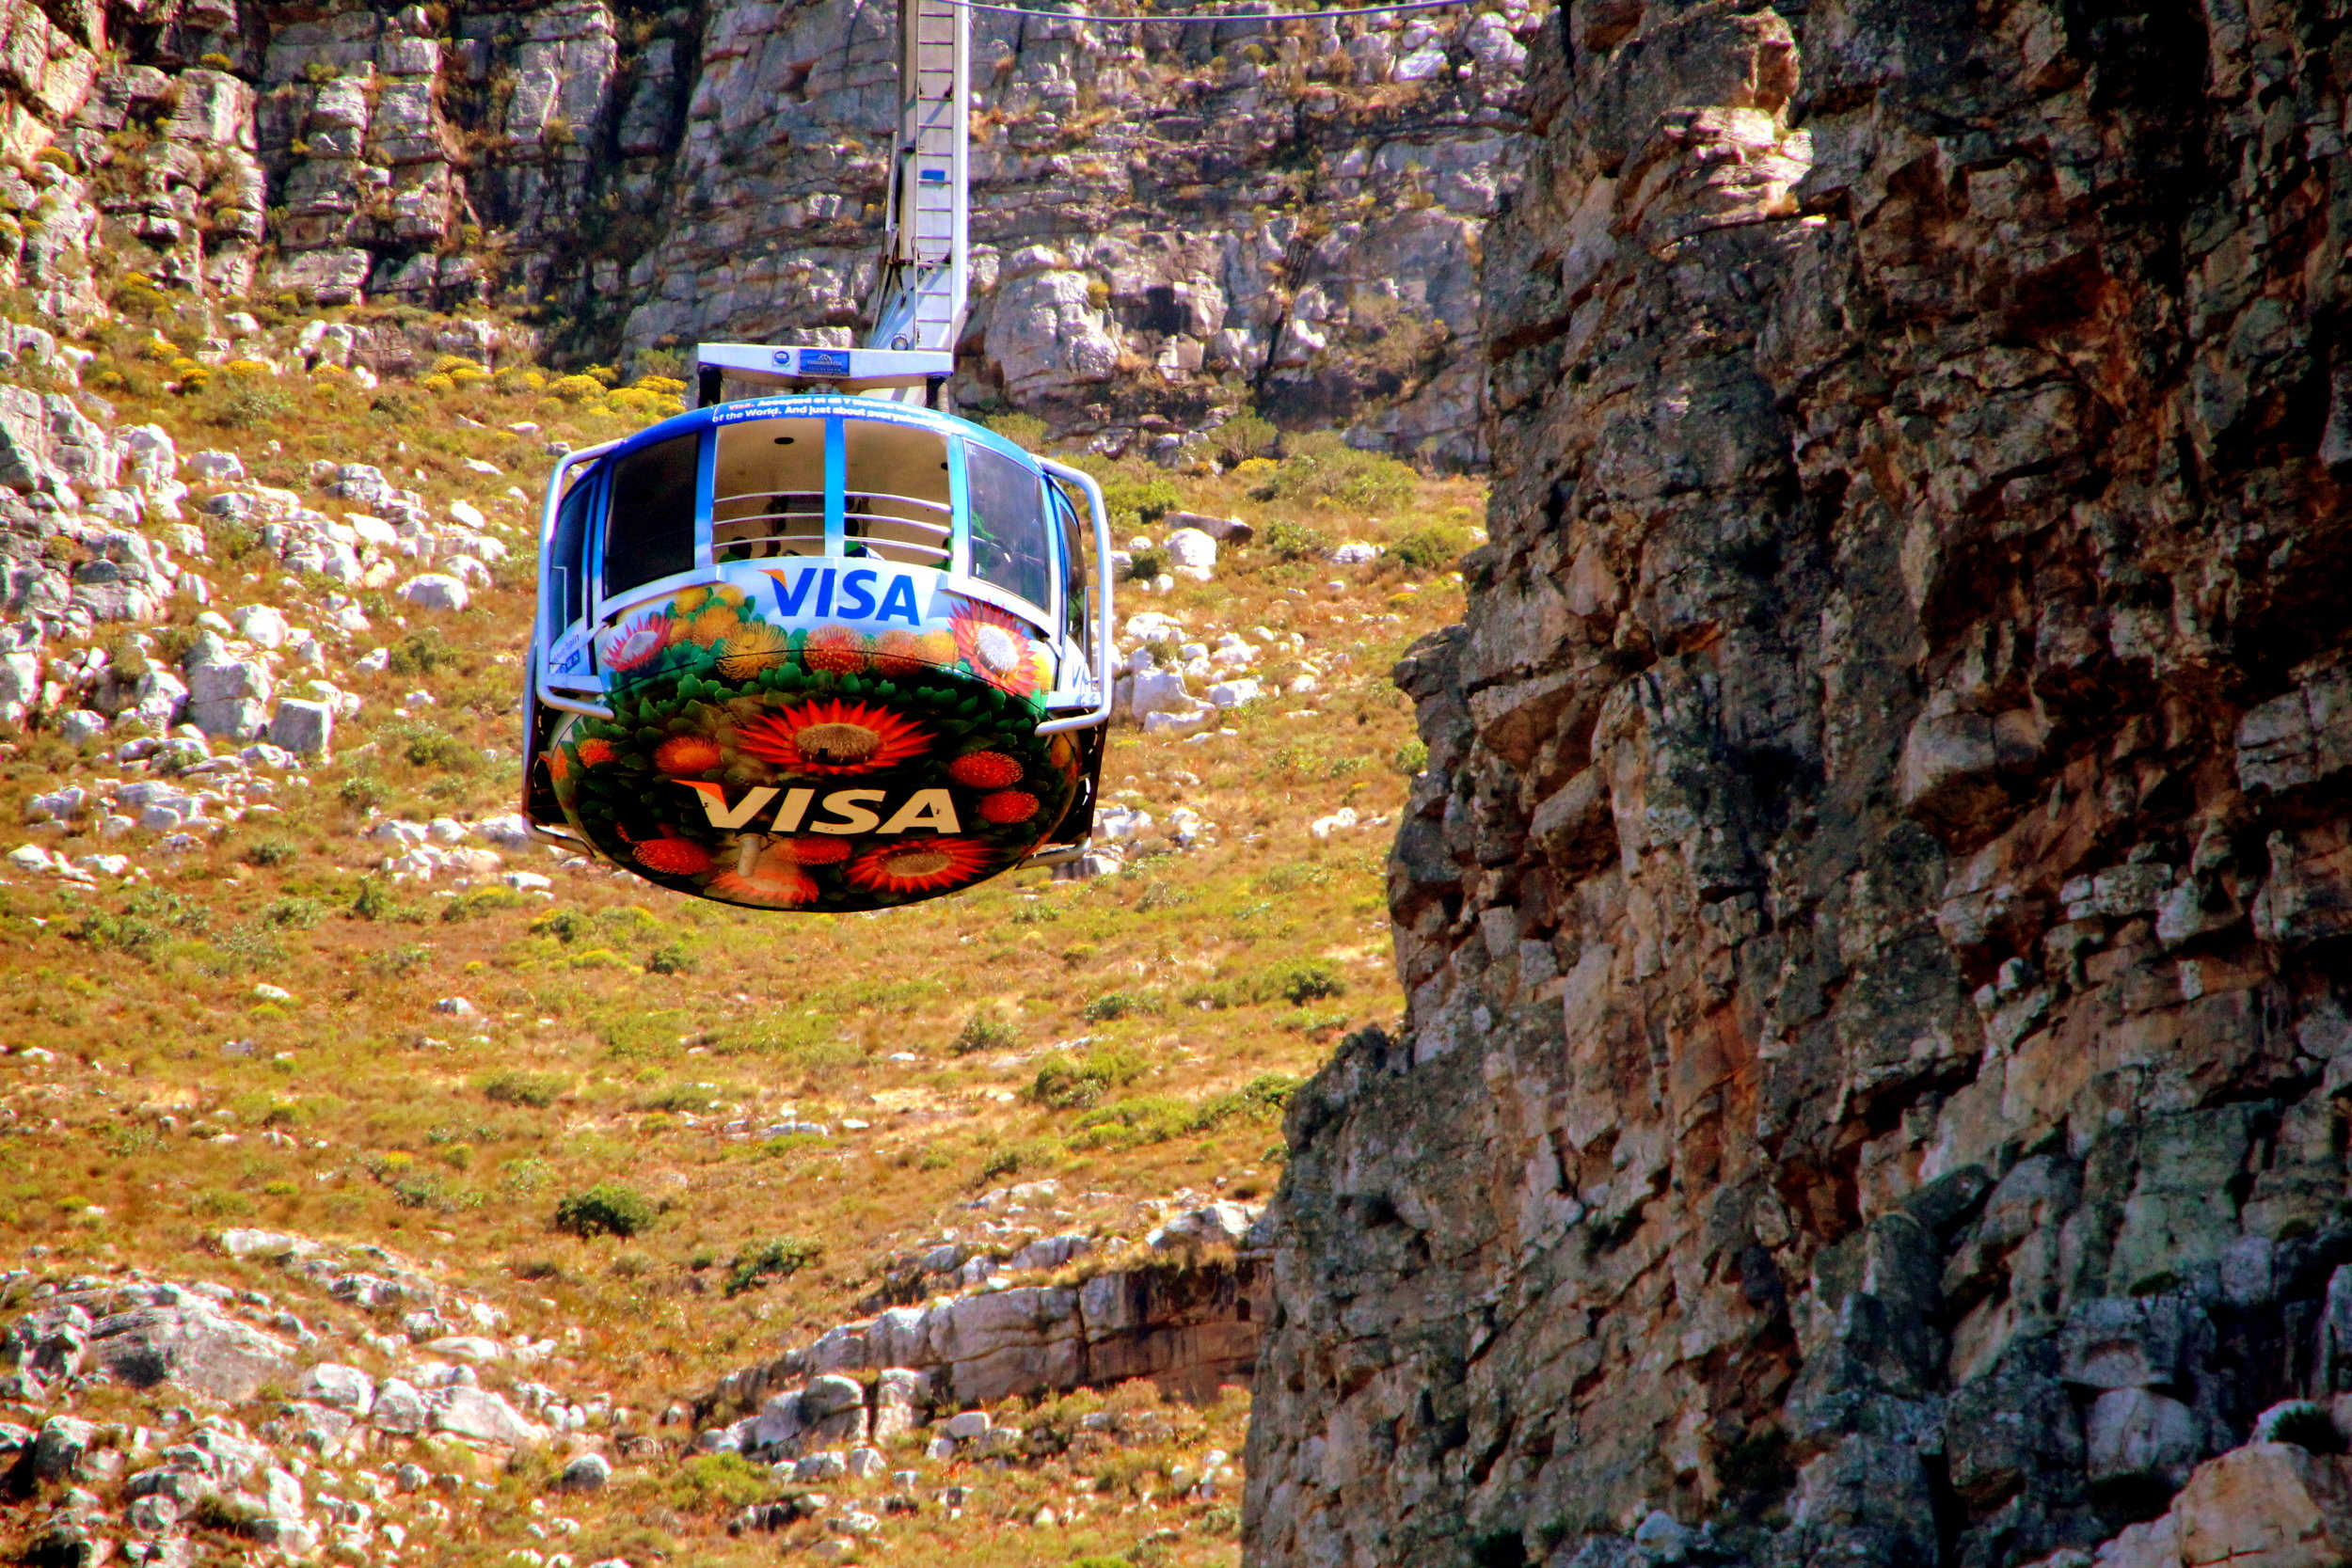 Cable Car at Table Mountain – The easier way to go up the mountain compared to hiking